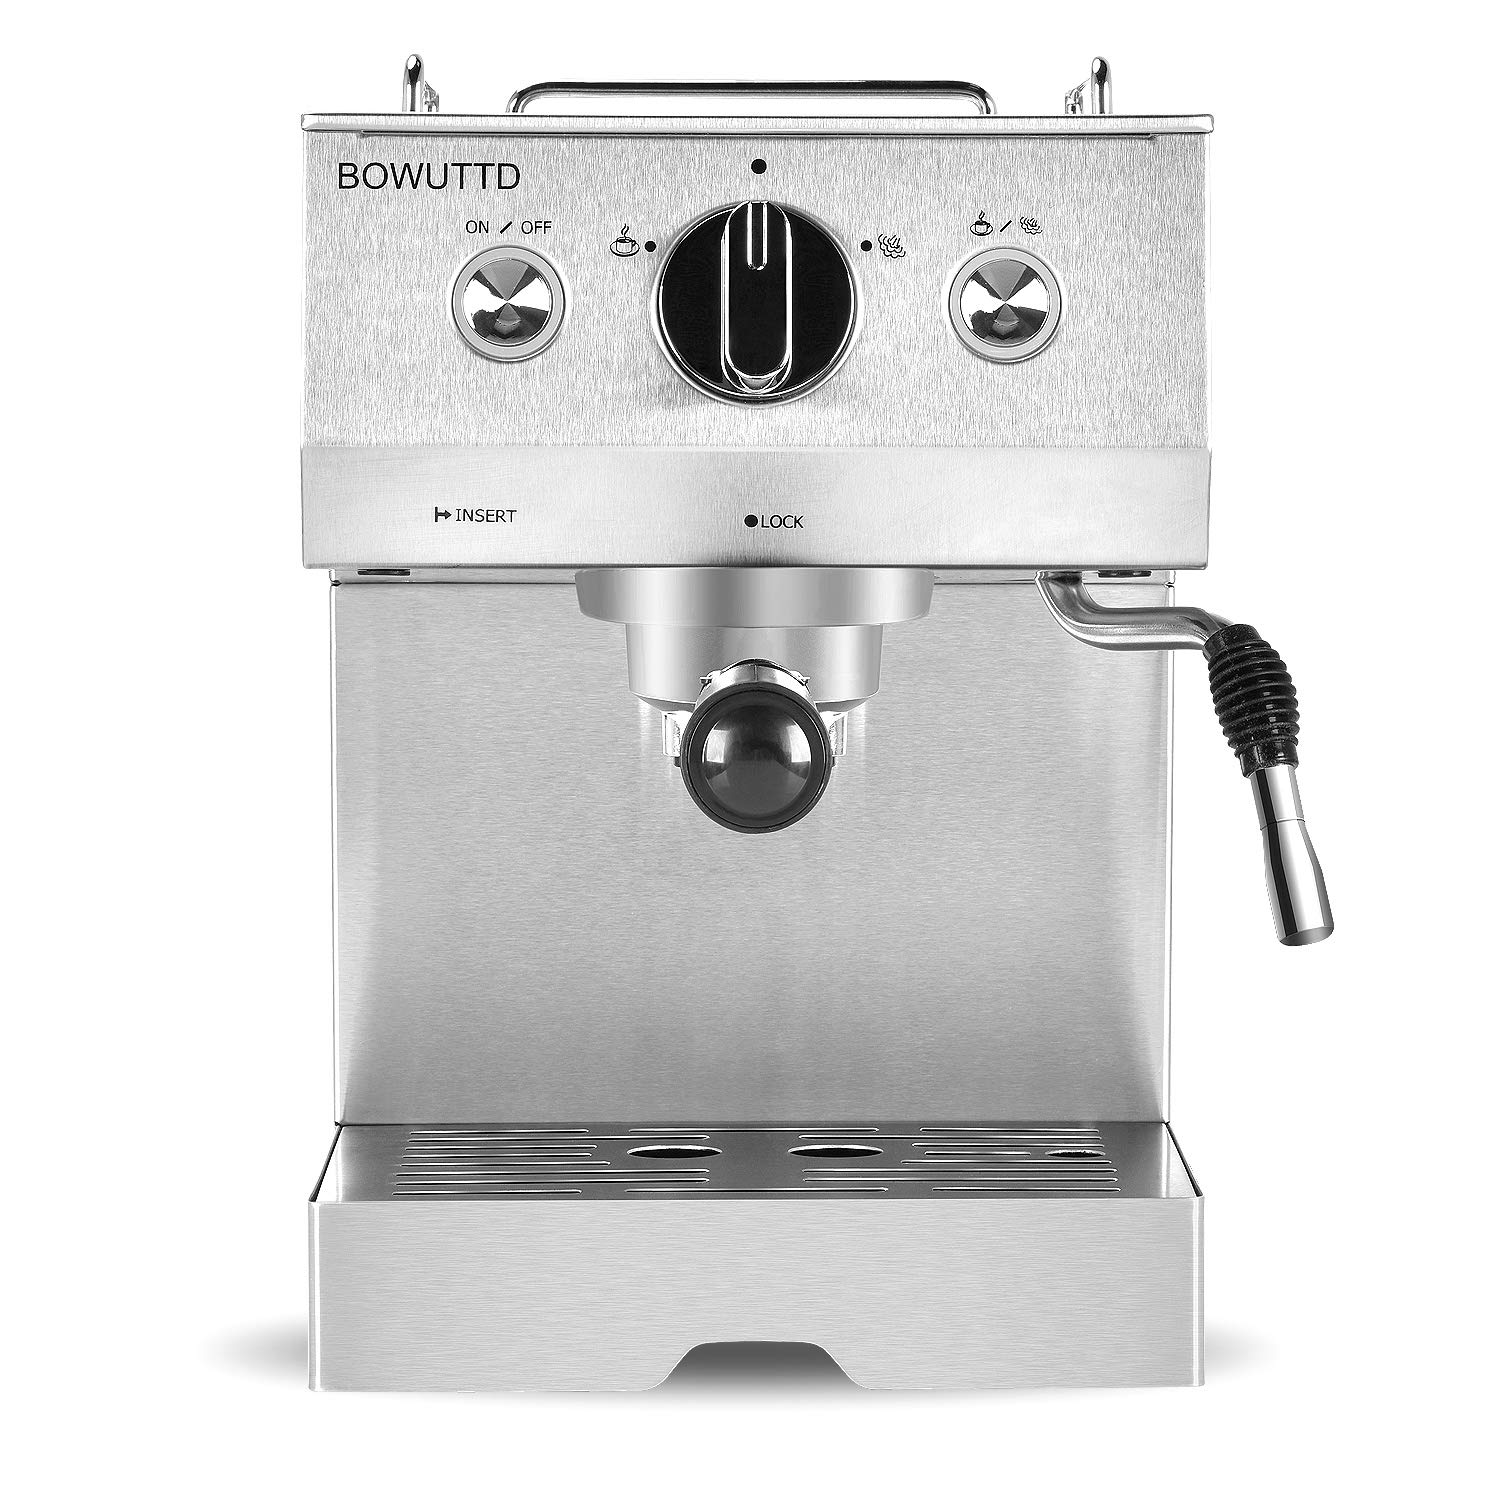 BOWUTTD Espresso Machine Coffee Maker, 1.25L Coffee Machine,Cappuccino, Latte, Moka and Espresso Maker with Milk Frothing Arm for Home and Office, 1050W, 15 Bar Pump, Silver/Stainless Steel BD0903